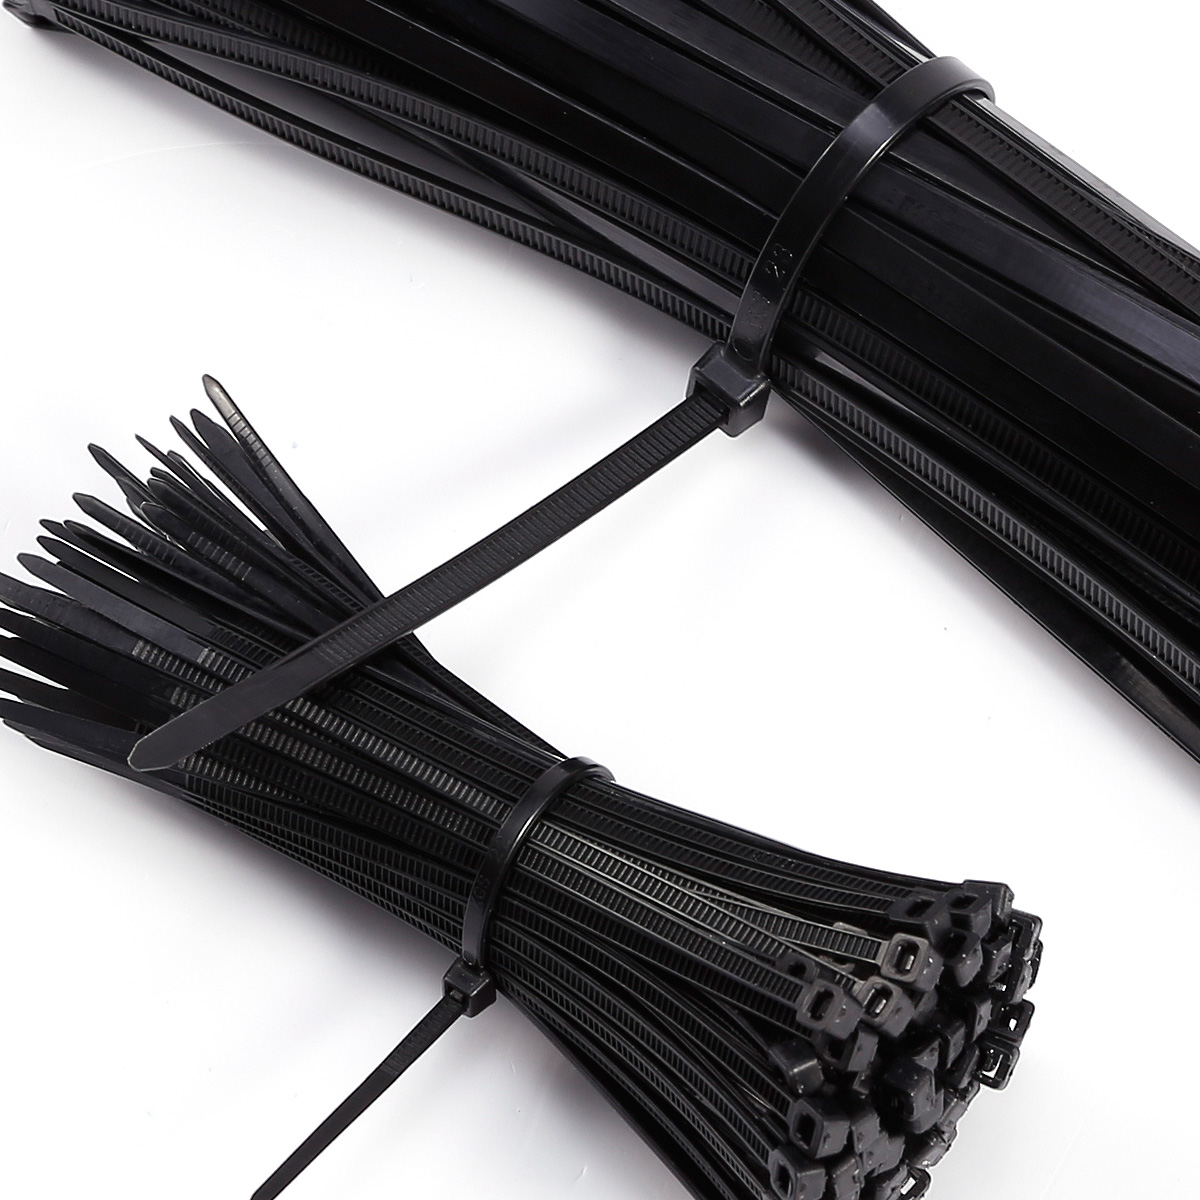 Cable Tie Wraps : Nylon cable ties heavy duty extra large long and wide tie